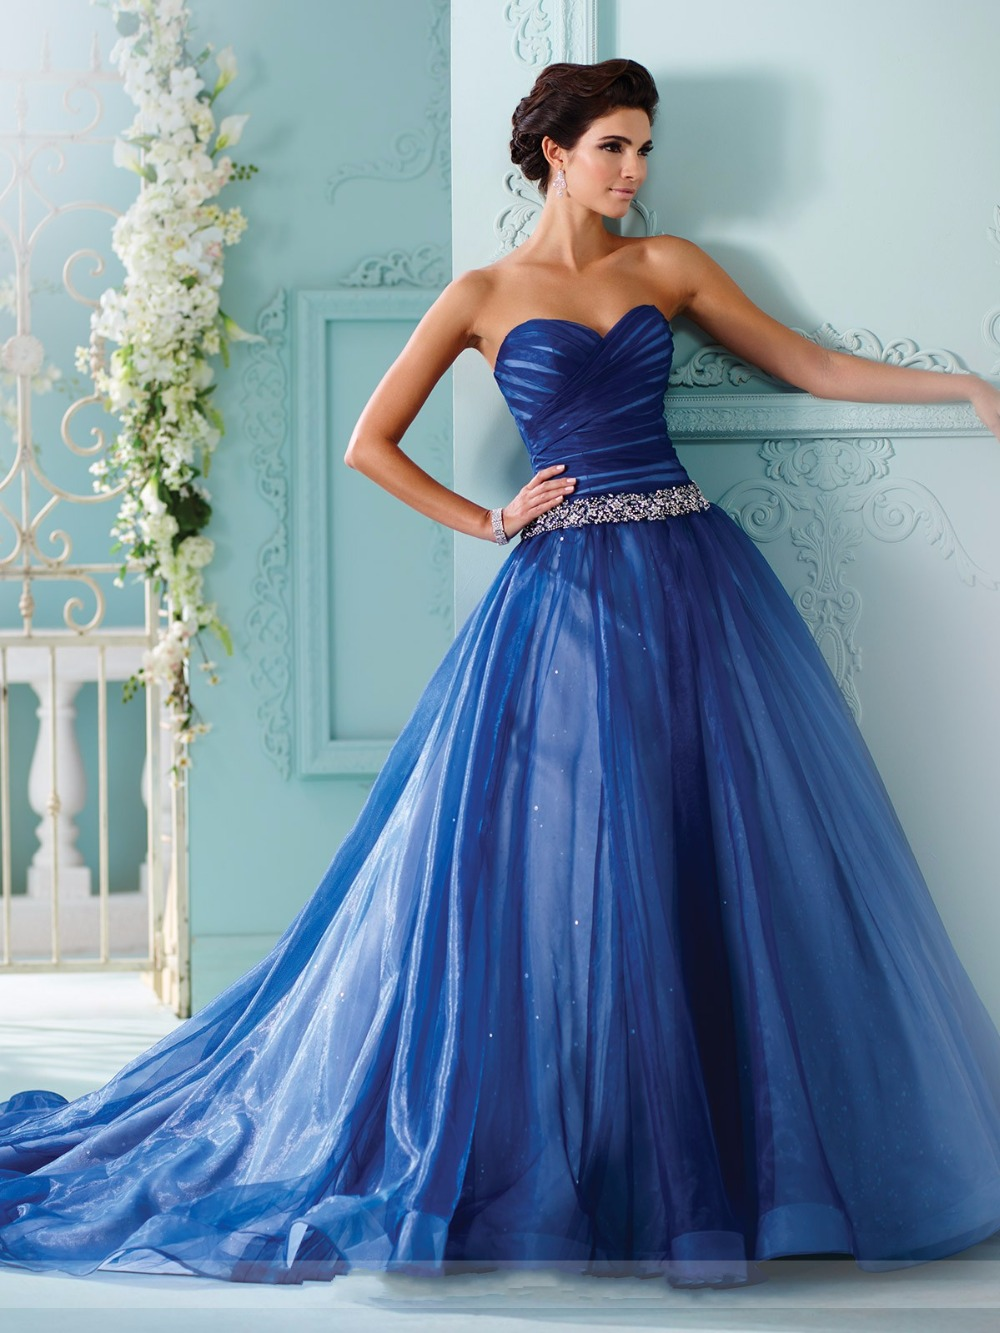 Lovely Vestidos De Novia Colores Diferentes Pictures Inspiration ...